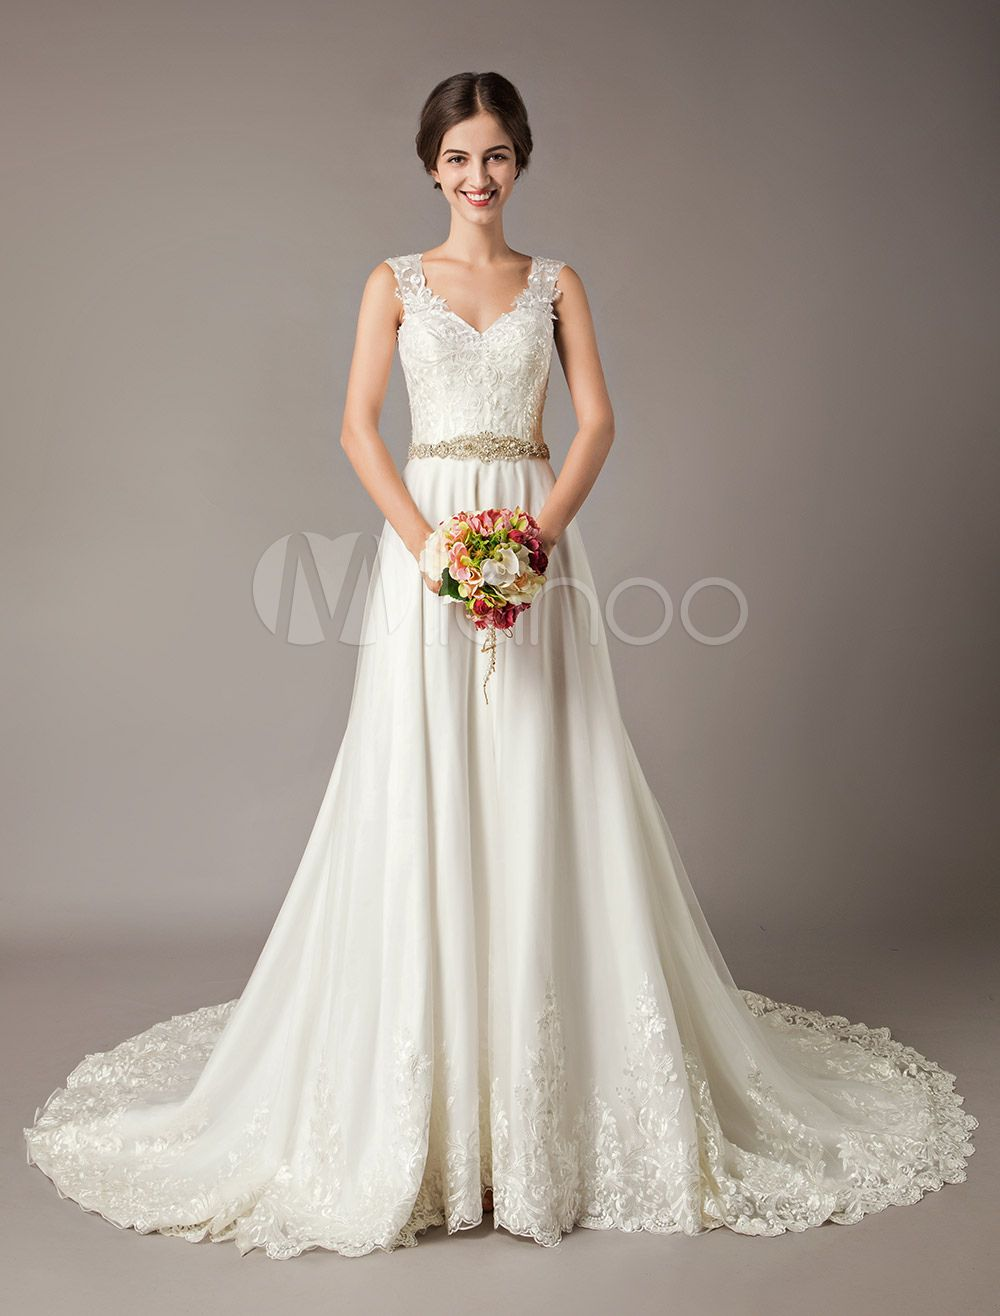 Best wedding dresses for 50 year olds  Wedding Dresses Ivory A Line Beading Sash V Neck Bridal Gowns With